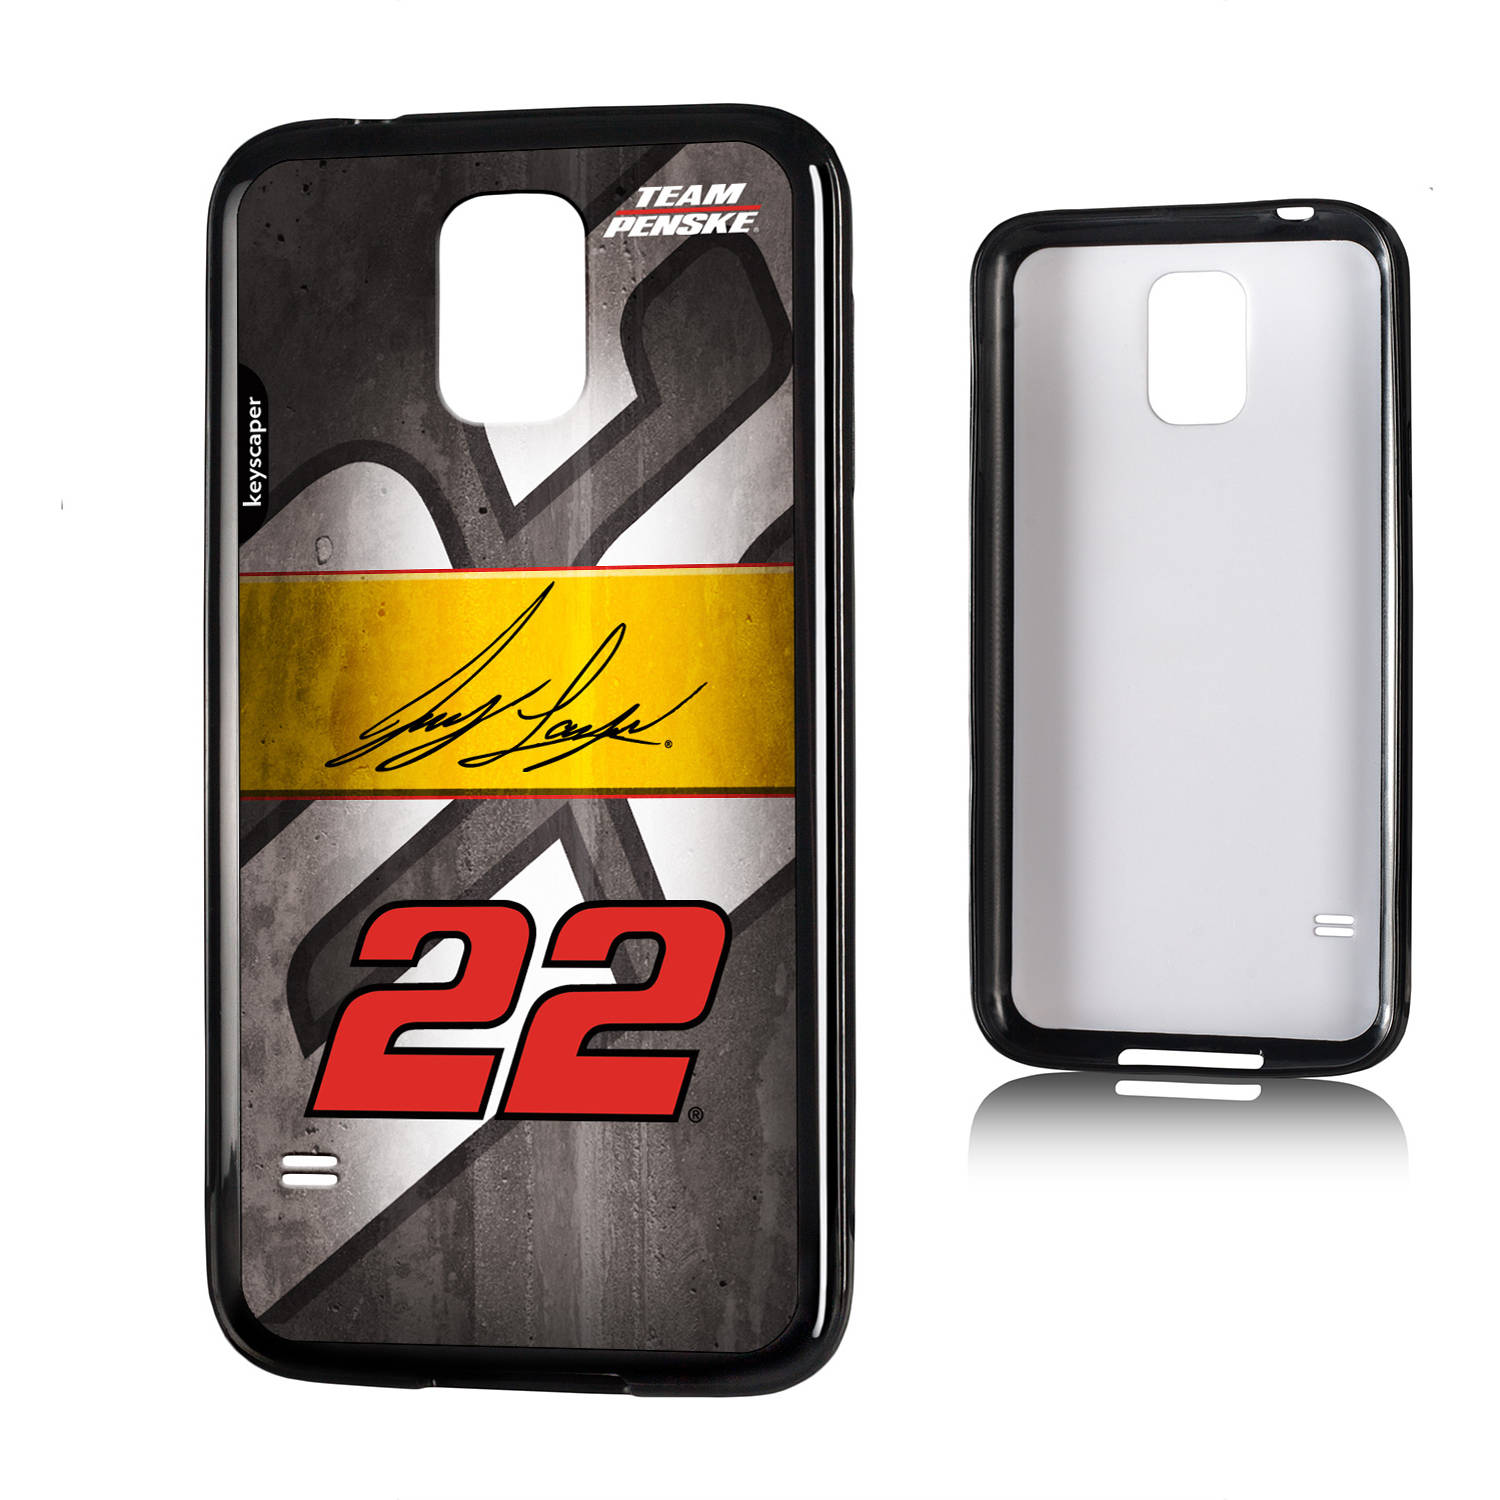 Joey Logano #22 Galaxy S5 Bumper Case